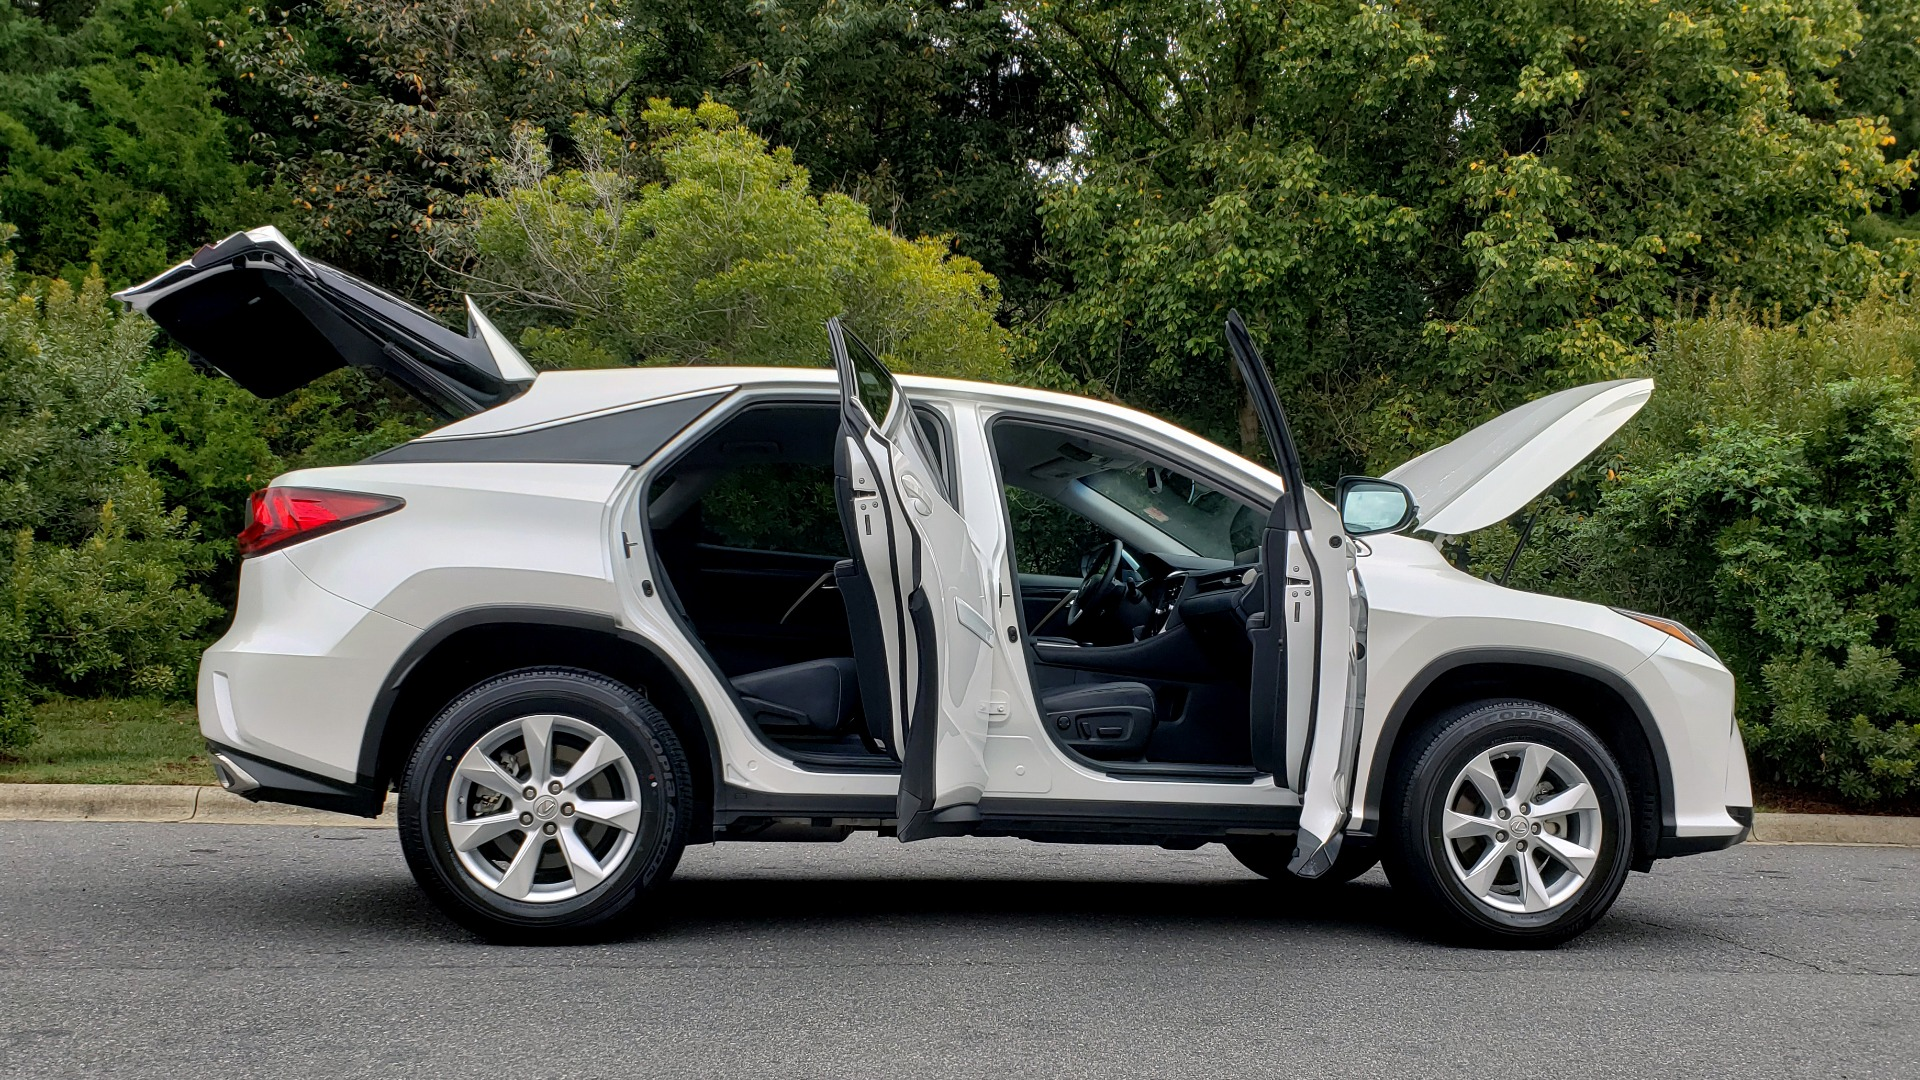 Used 2016 Lexus RX 350 FWD / 4-DR / 3.5L V6 / 8-SPD AUTO / LEATHER / REARVIEW for sale $29,795 at Formula Imports in Charlotte NC 28227 11